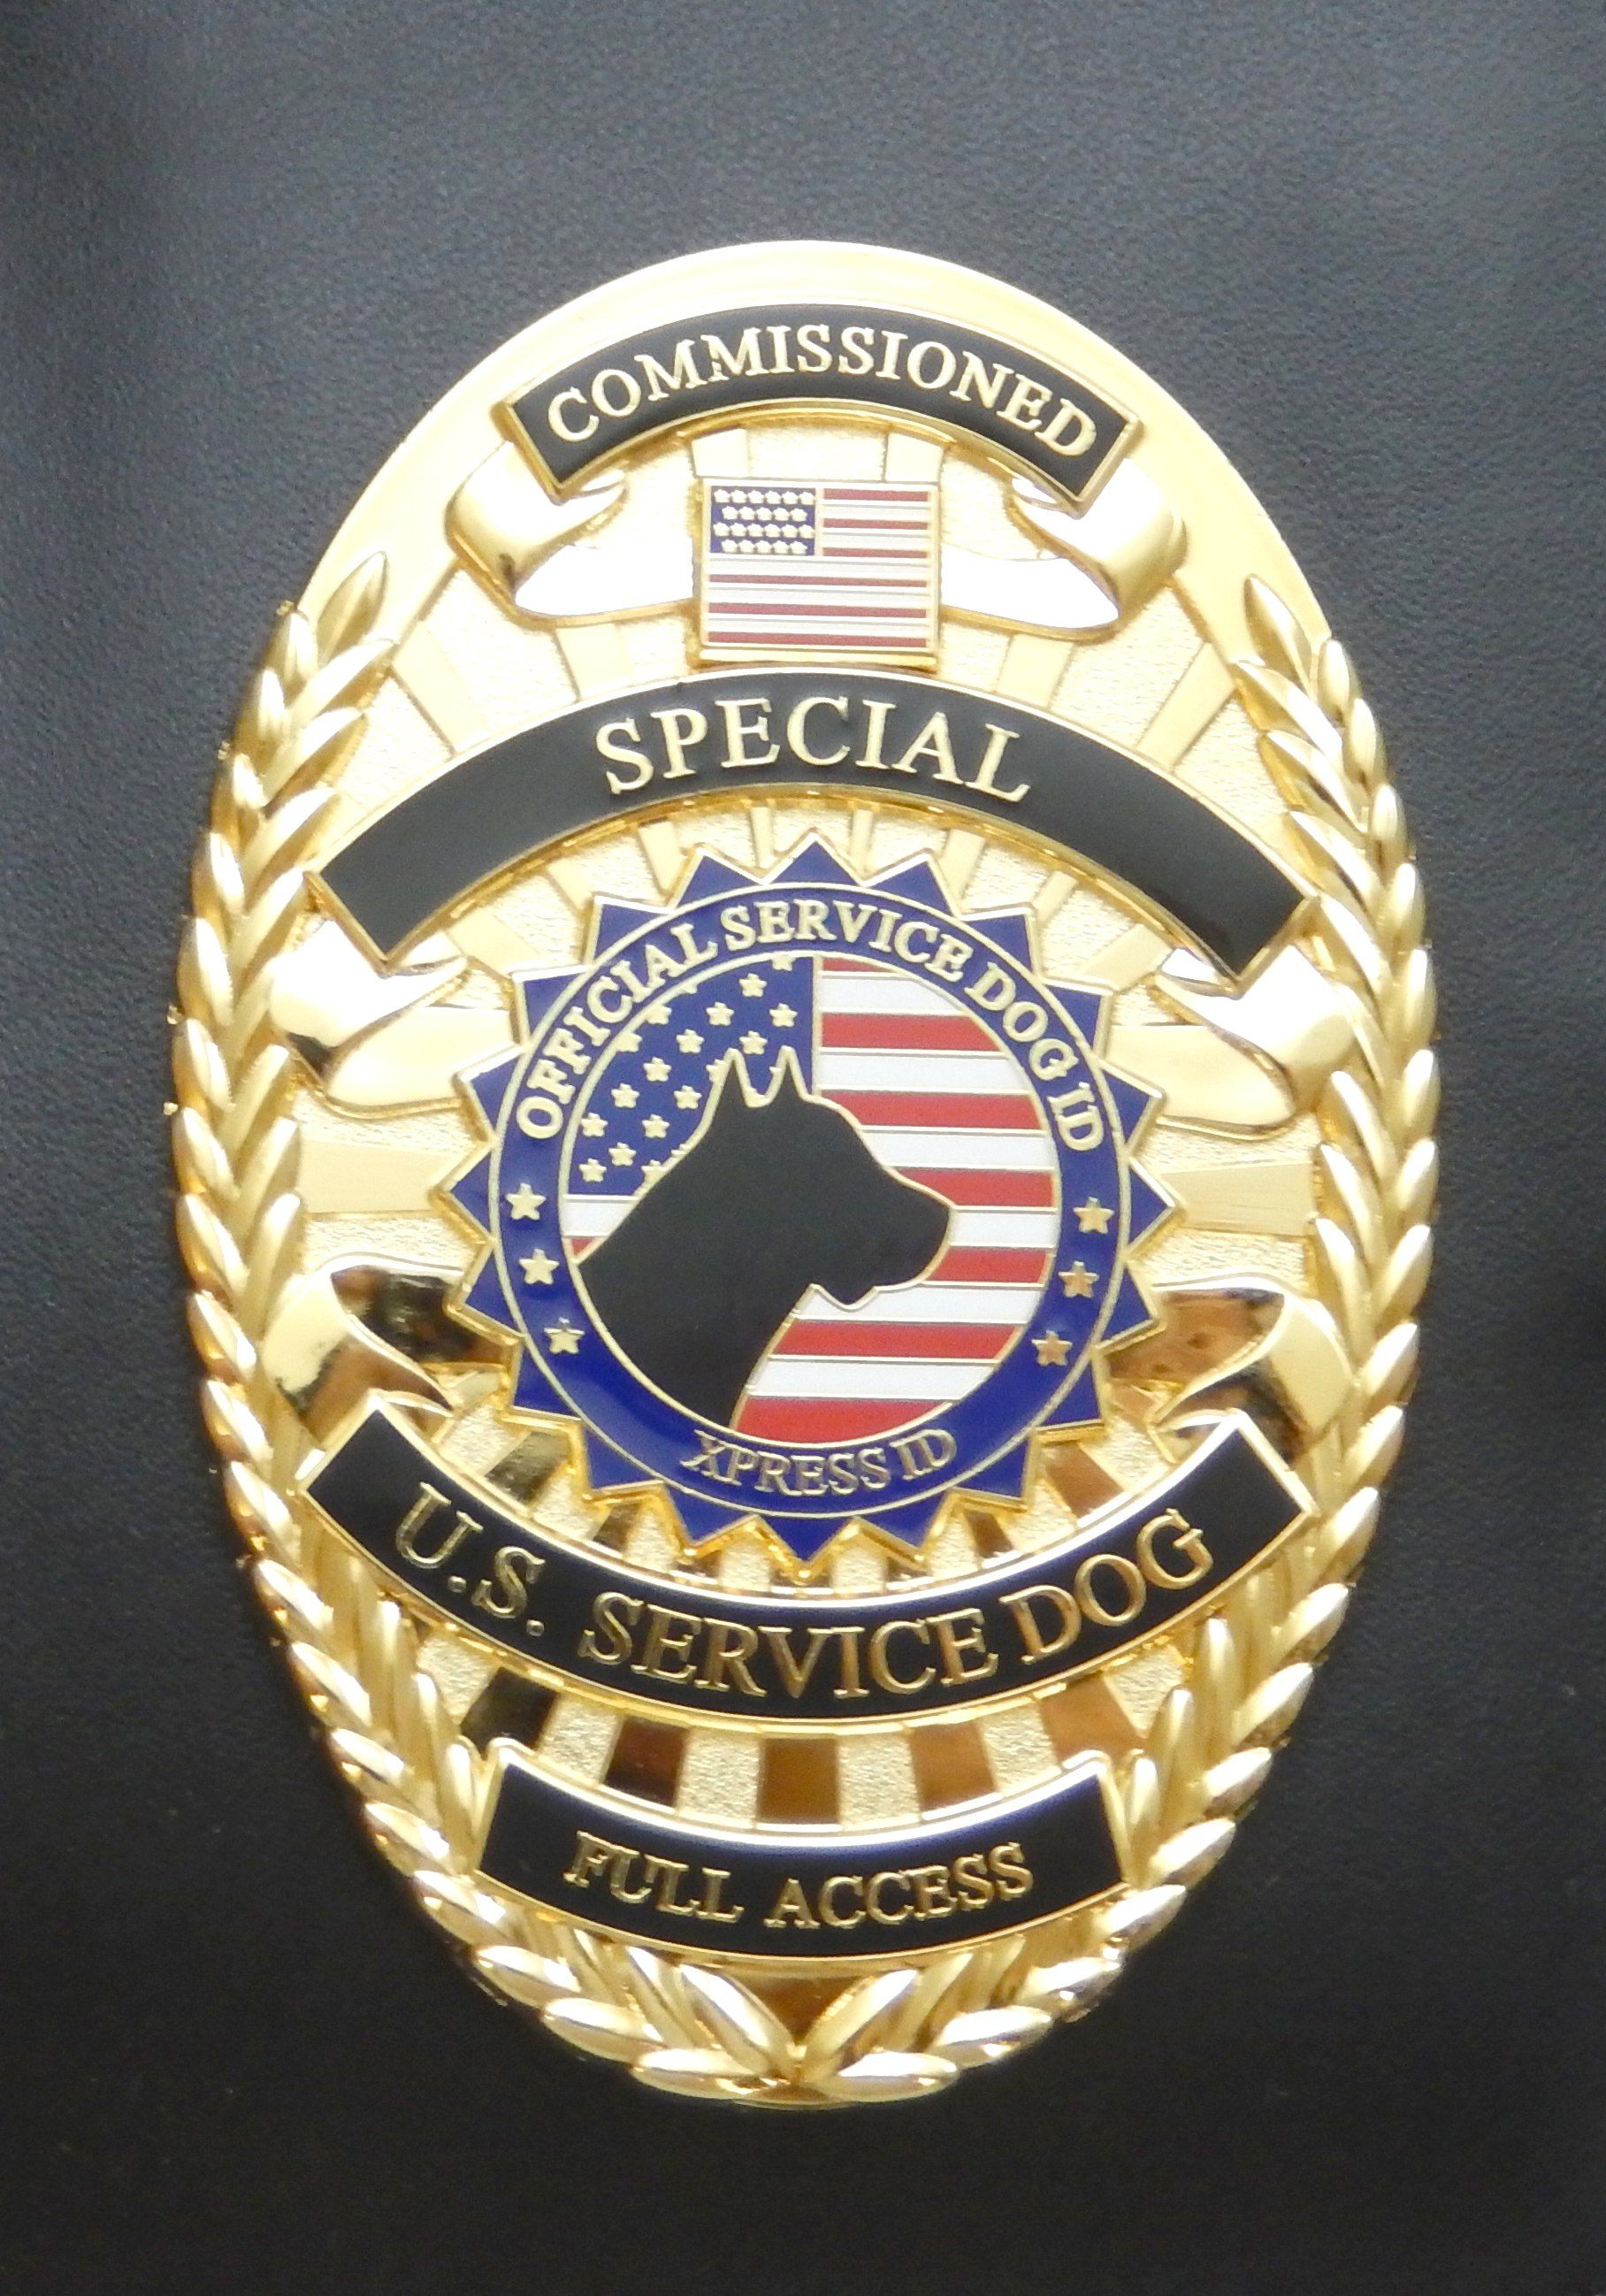 Service Dog Badge Carrying Case Service Dogs Autism Service